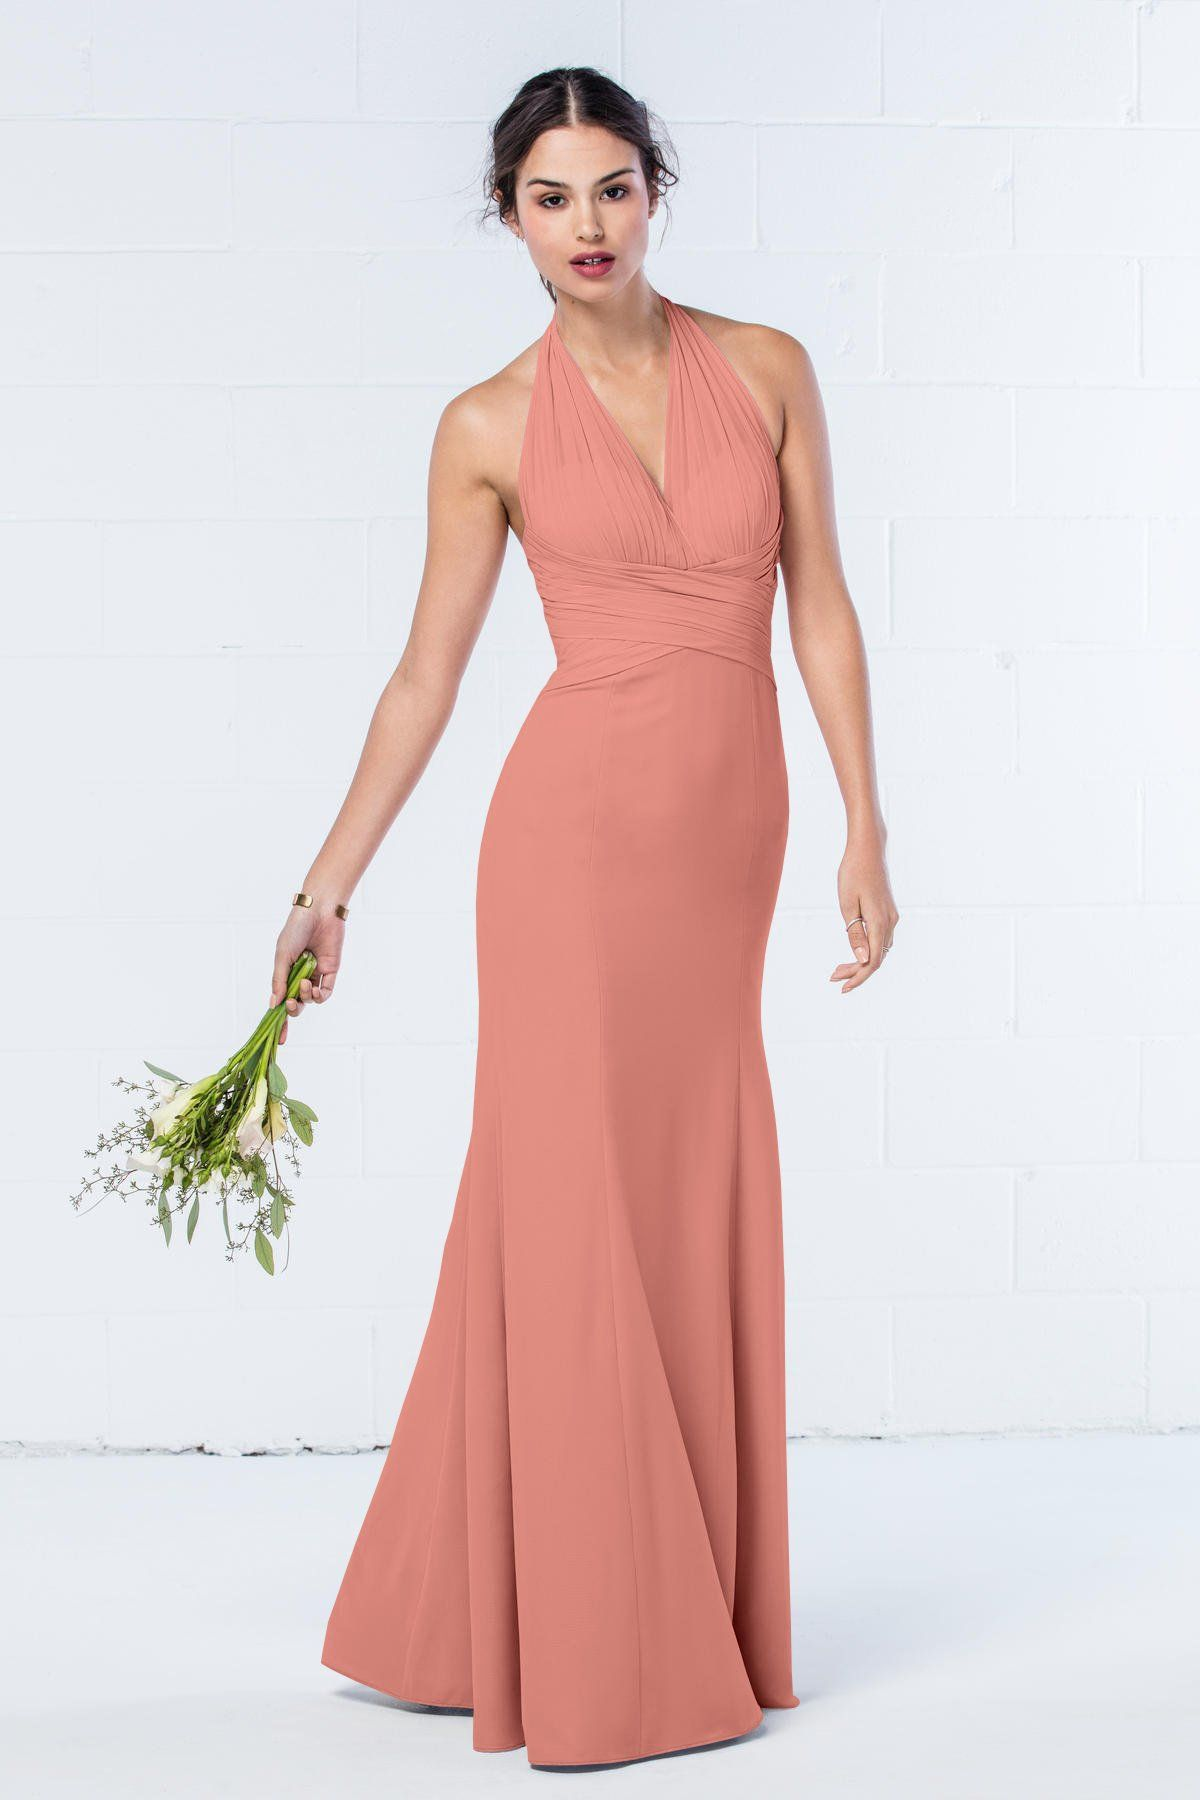 Pin by the bridesmaids stylist on coral bridesmaids dresses coral bridesmaid dresses pink bridesmaids plum color wtoo bridal fort worth mma colors dallas products ombrellifo Image collections